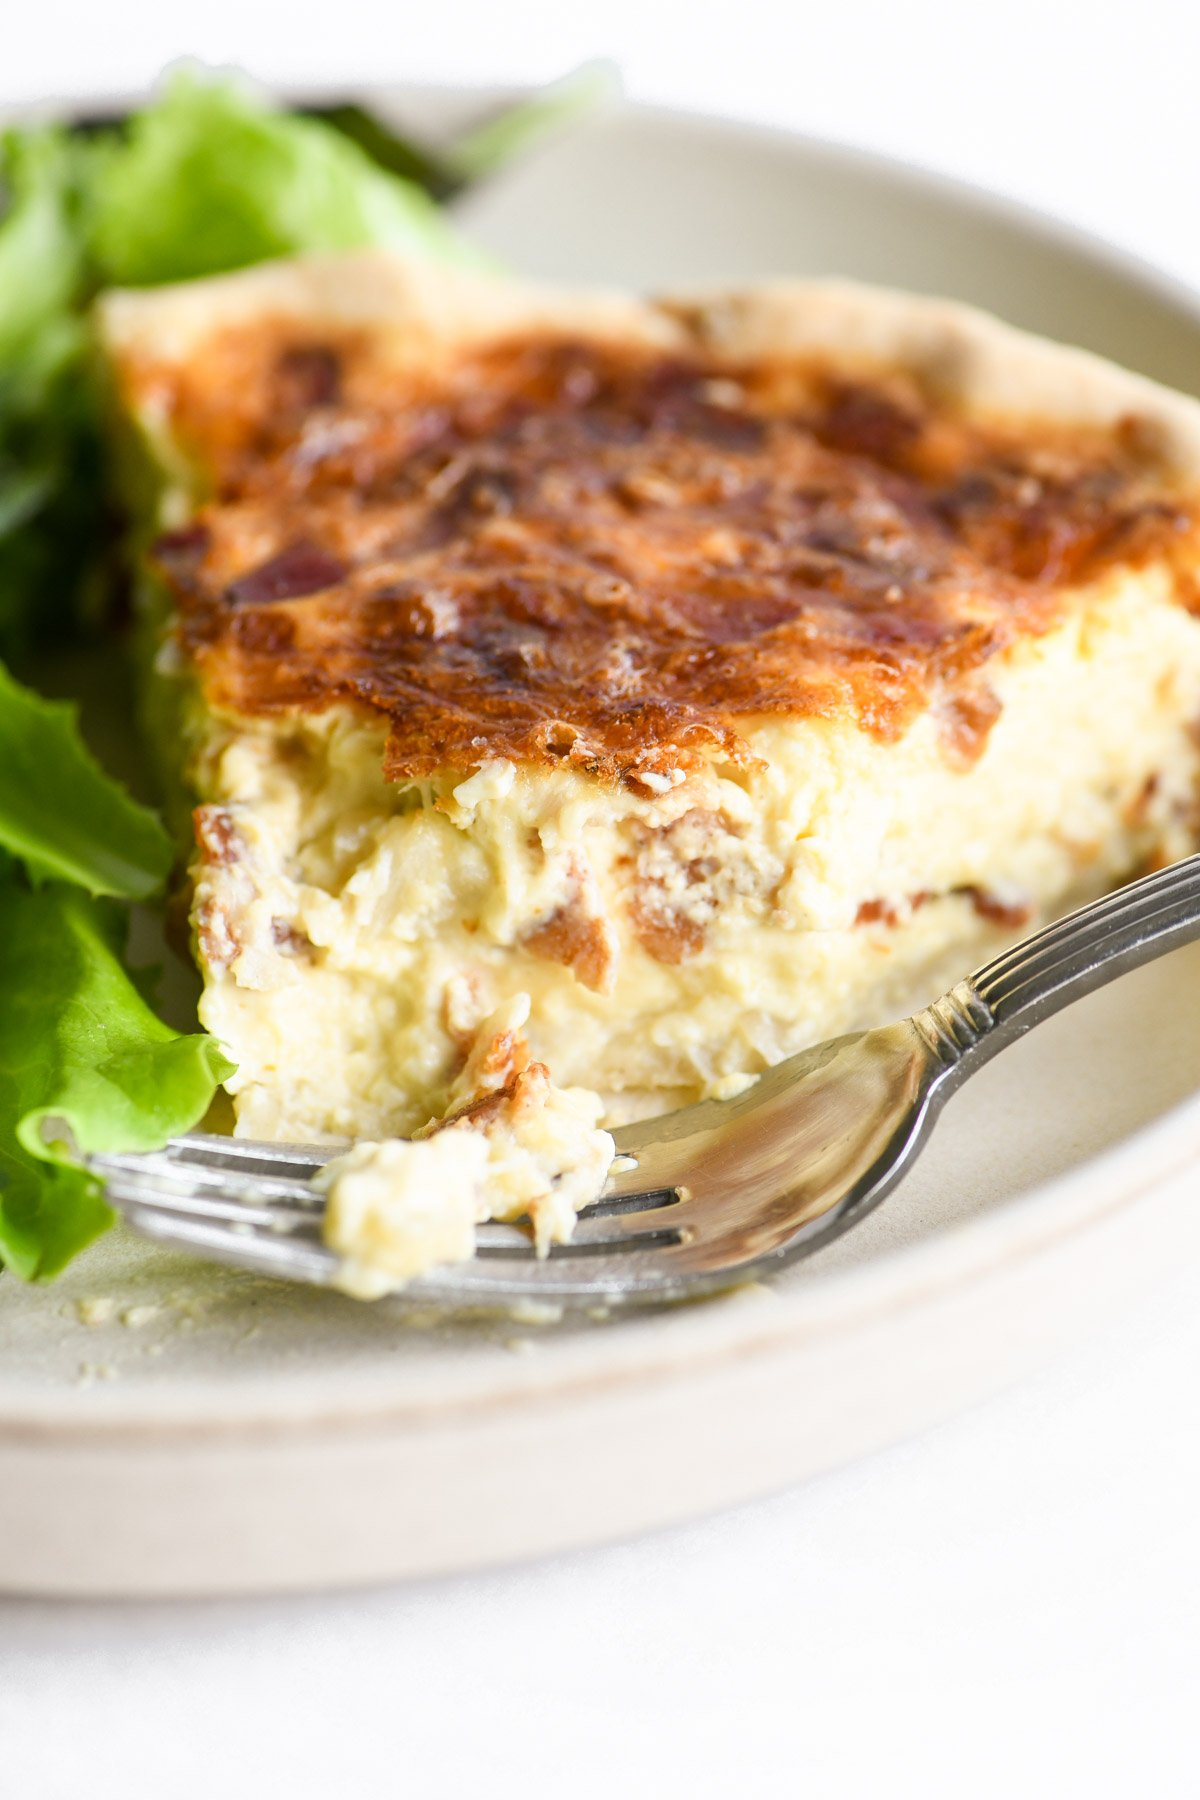 a slice of quiche on a plate with salad